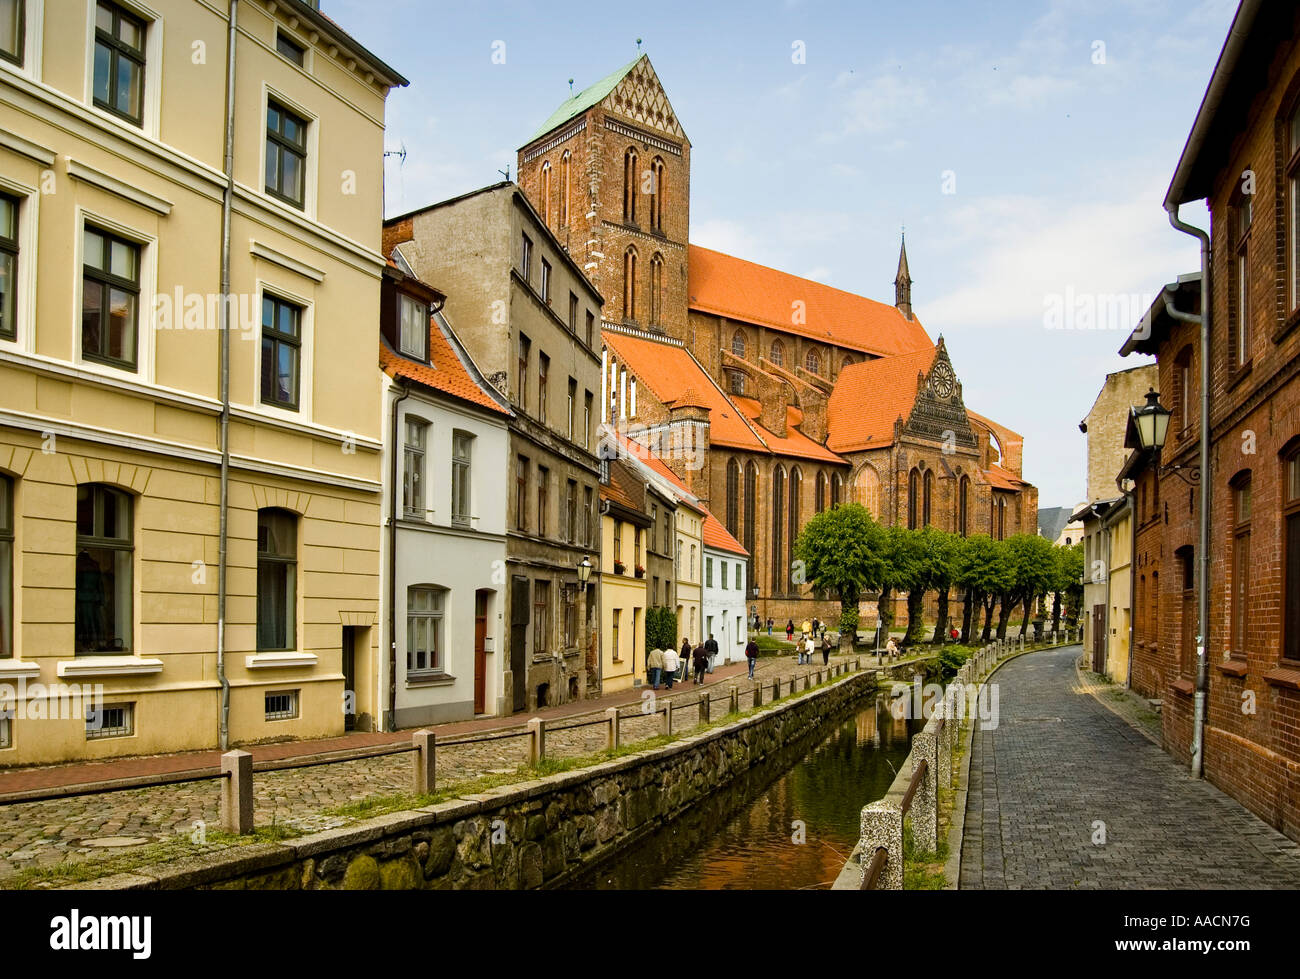 St. Nikolai church, Hanseatic league city, Wismar, Mecklenburg-Western Pomerania, Germany - Stock Image